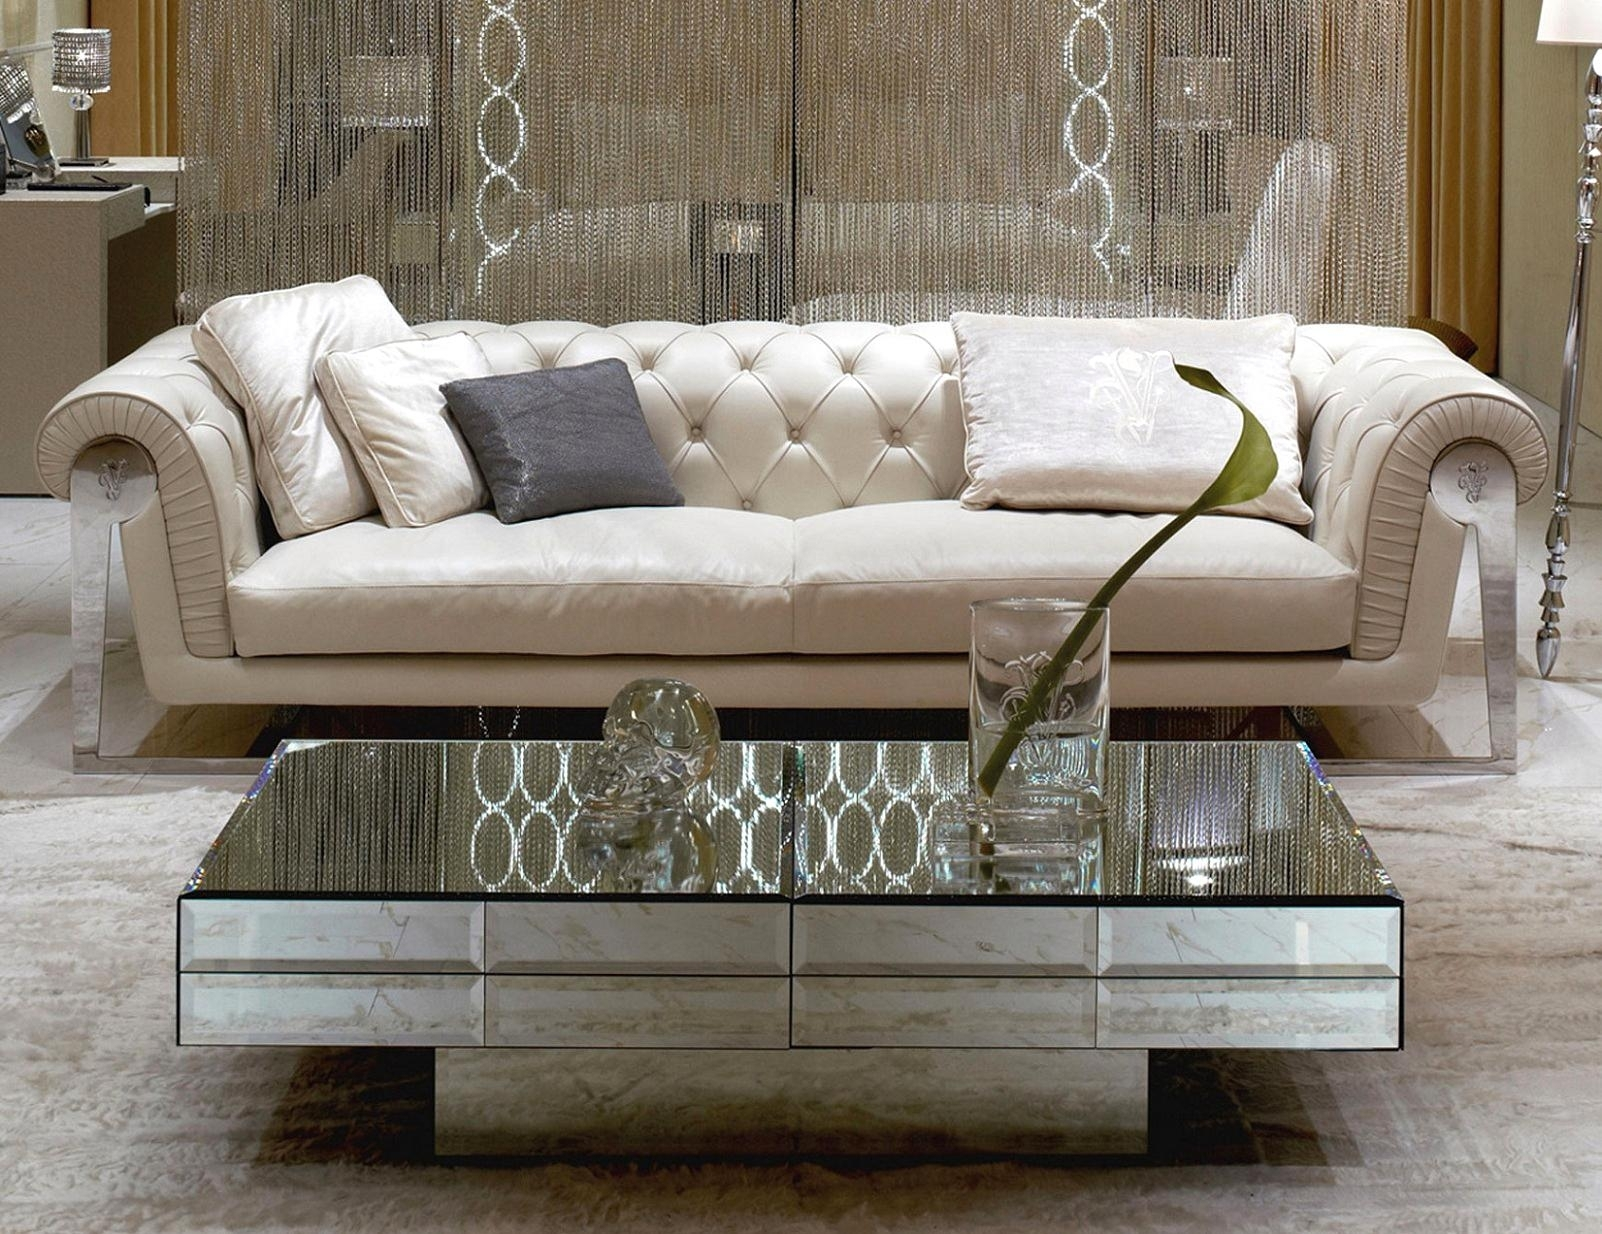 Smart Glass Top Mirrored Coffee Table Stainless Ideas Ow Profile Regarding Smart Glass Top Coffee Tables (View 25 of 30)